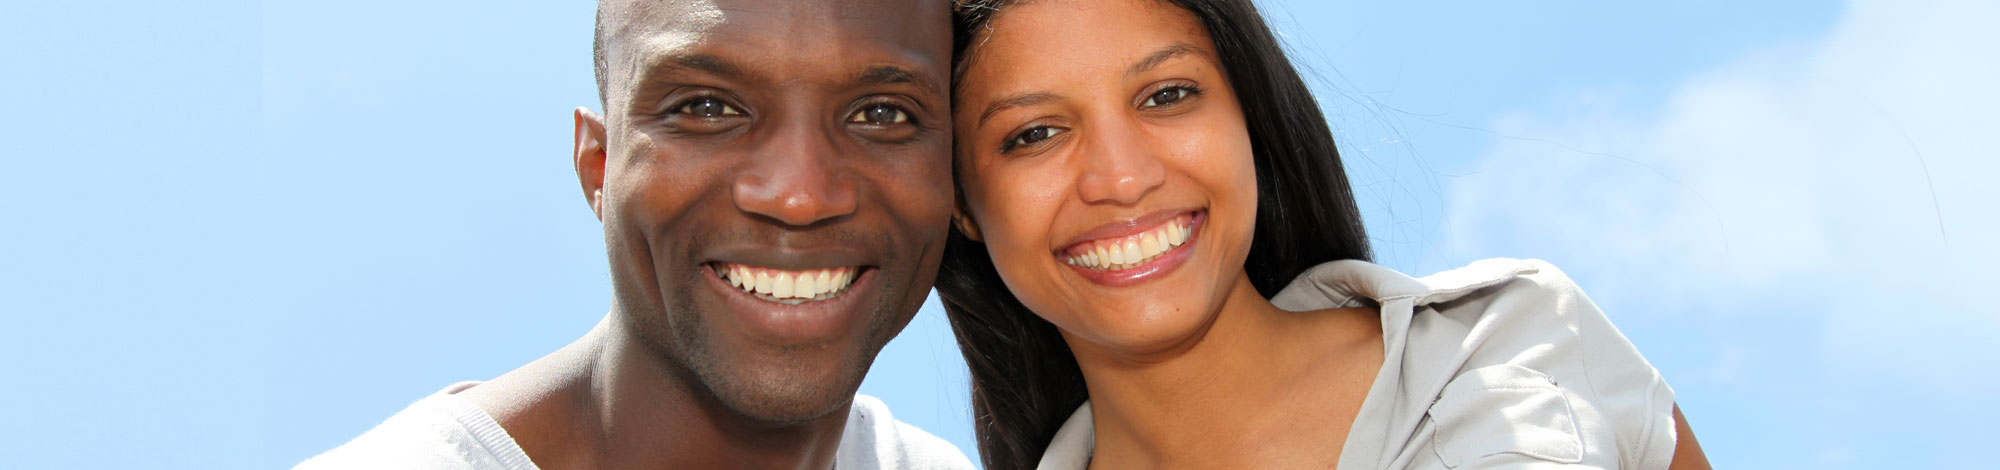 Aesthetic and Implant Dentistry in Huntsville, AL